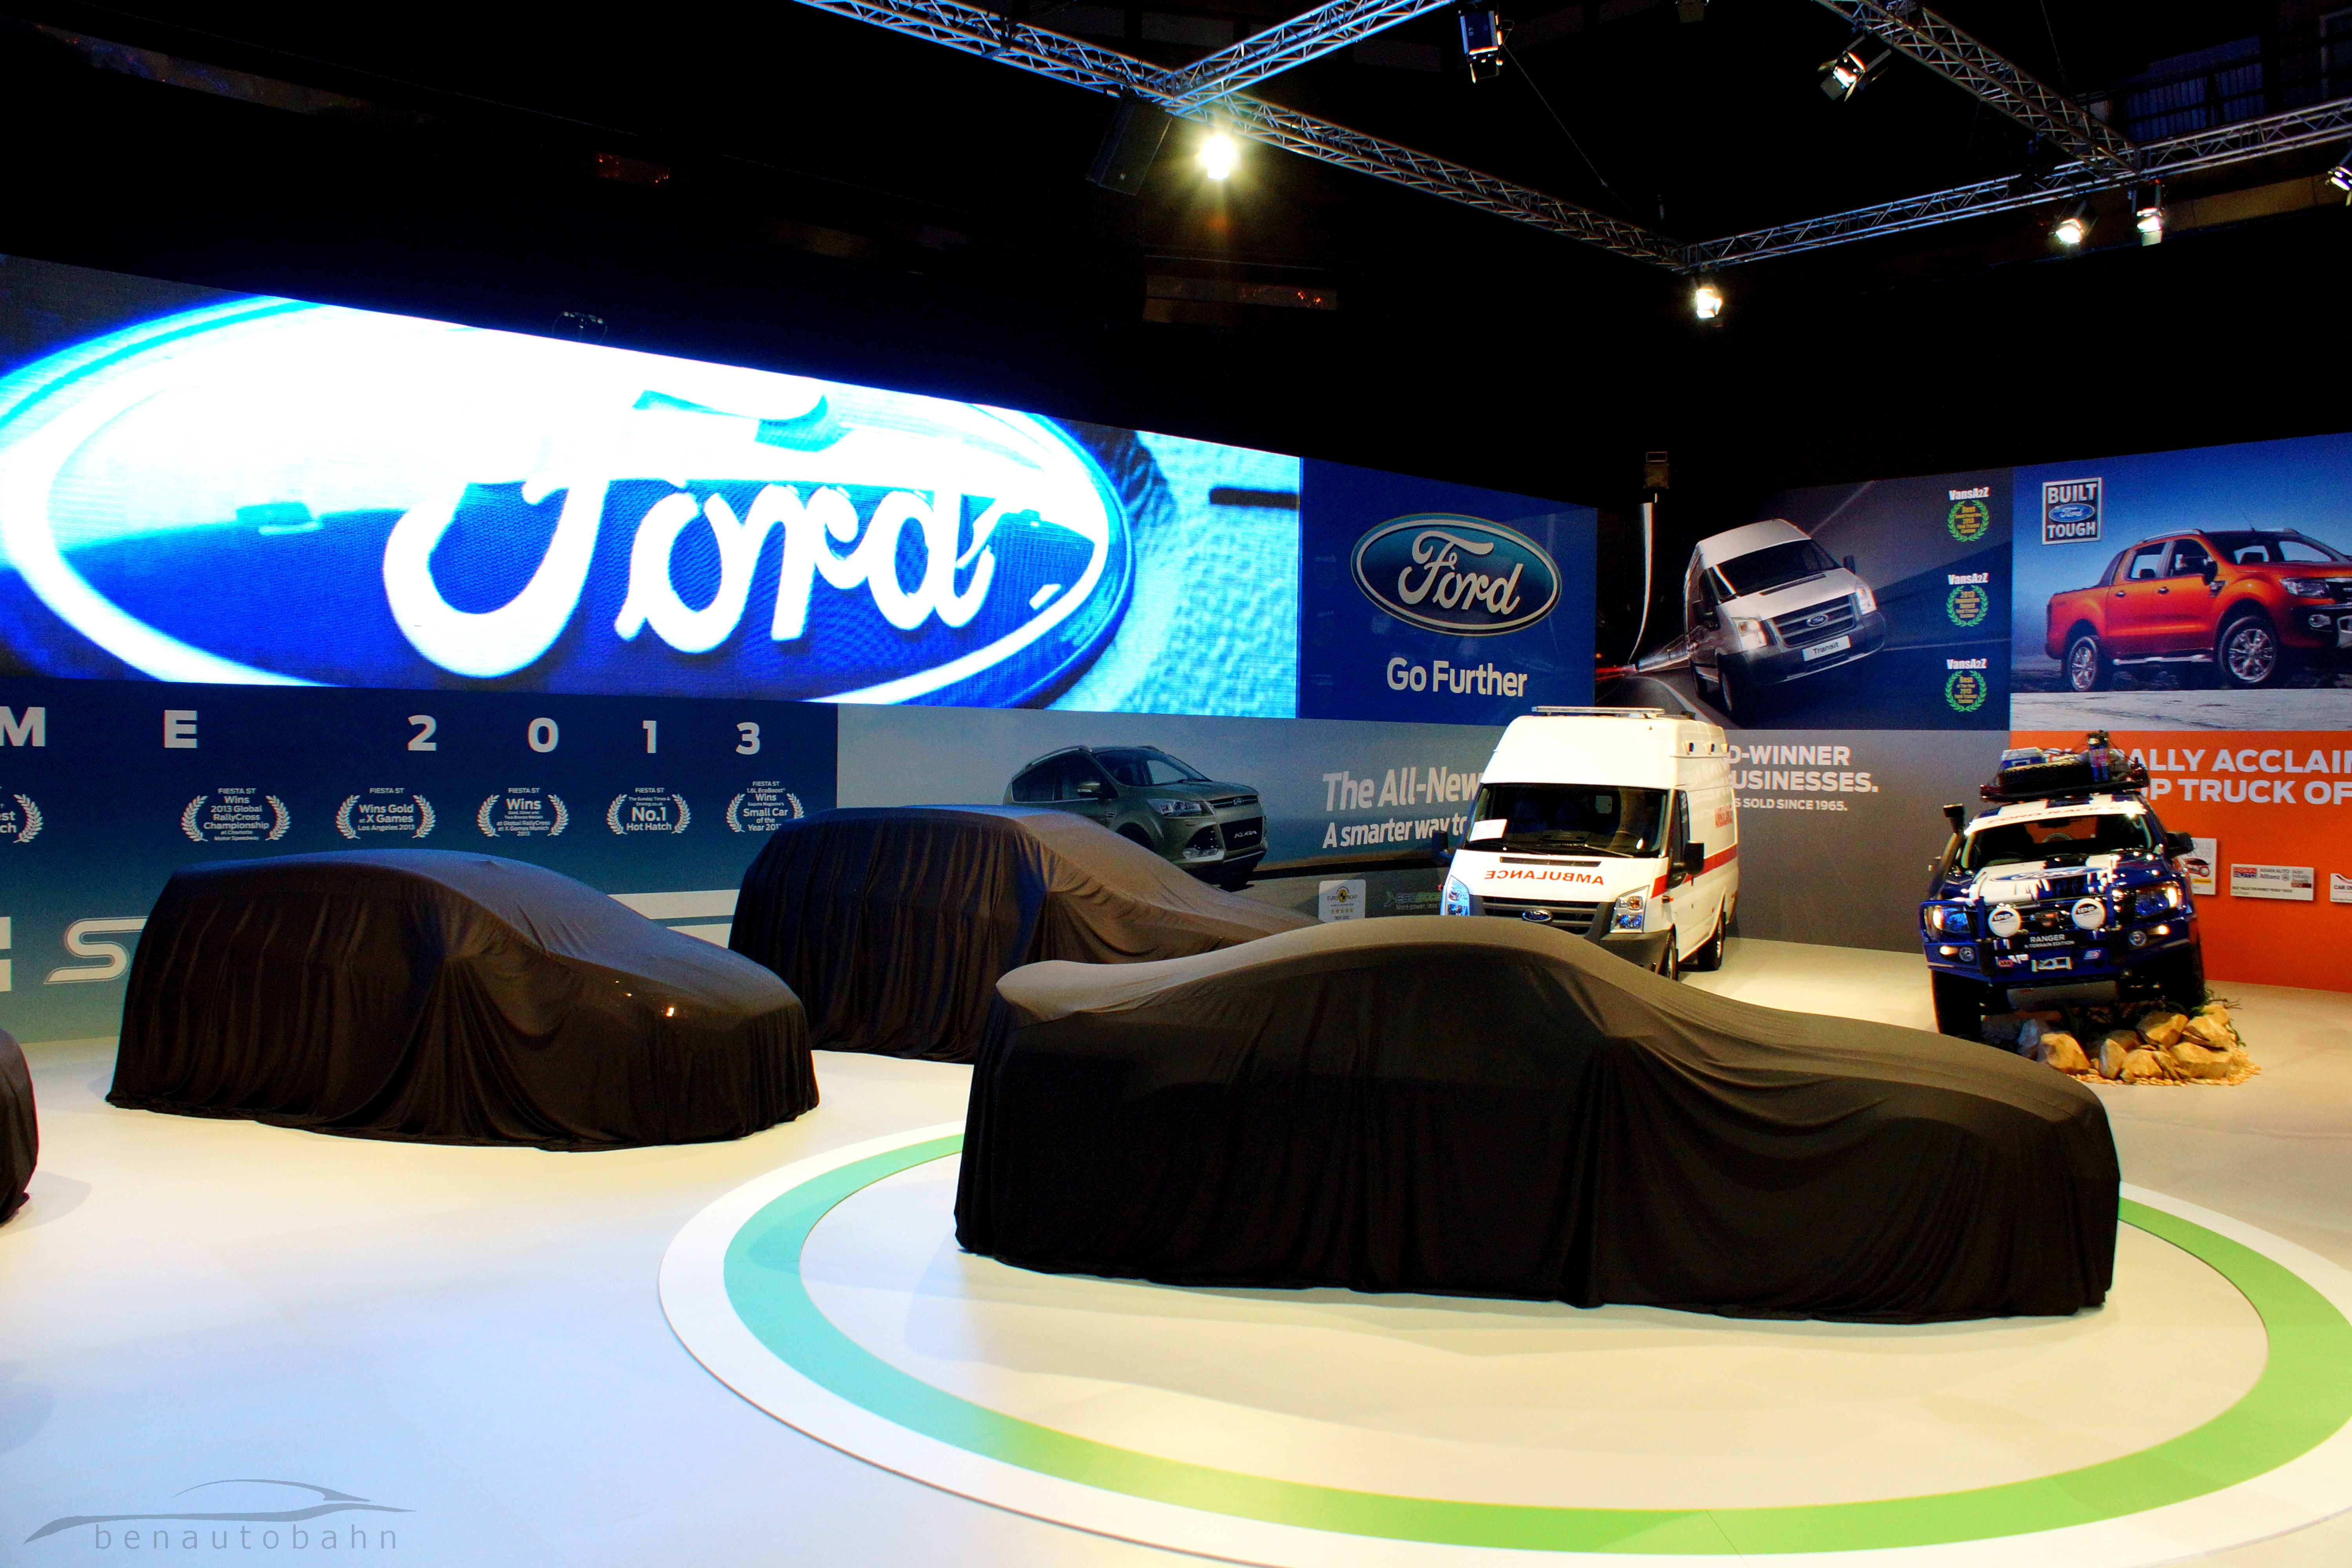 Ford's booth before the official reveal